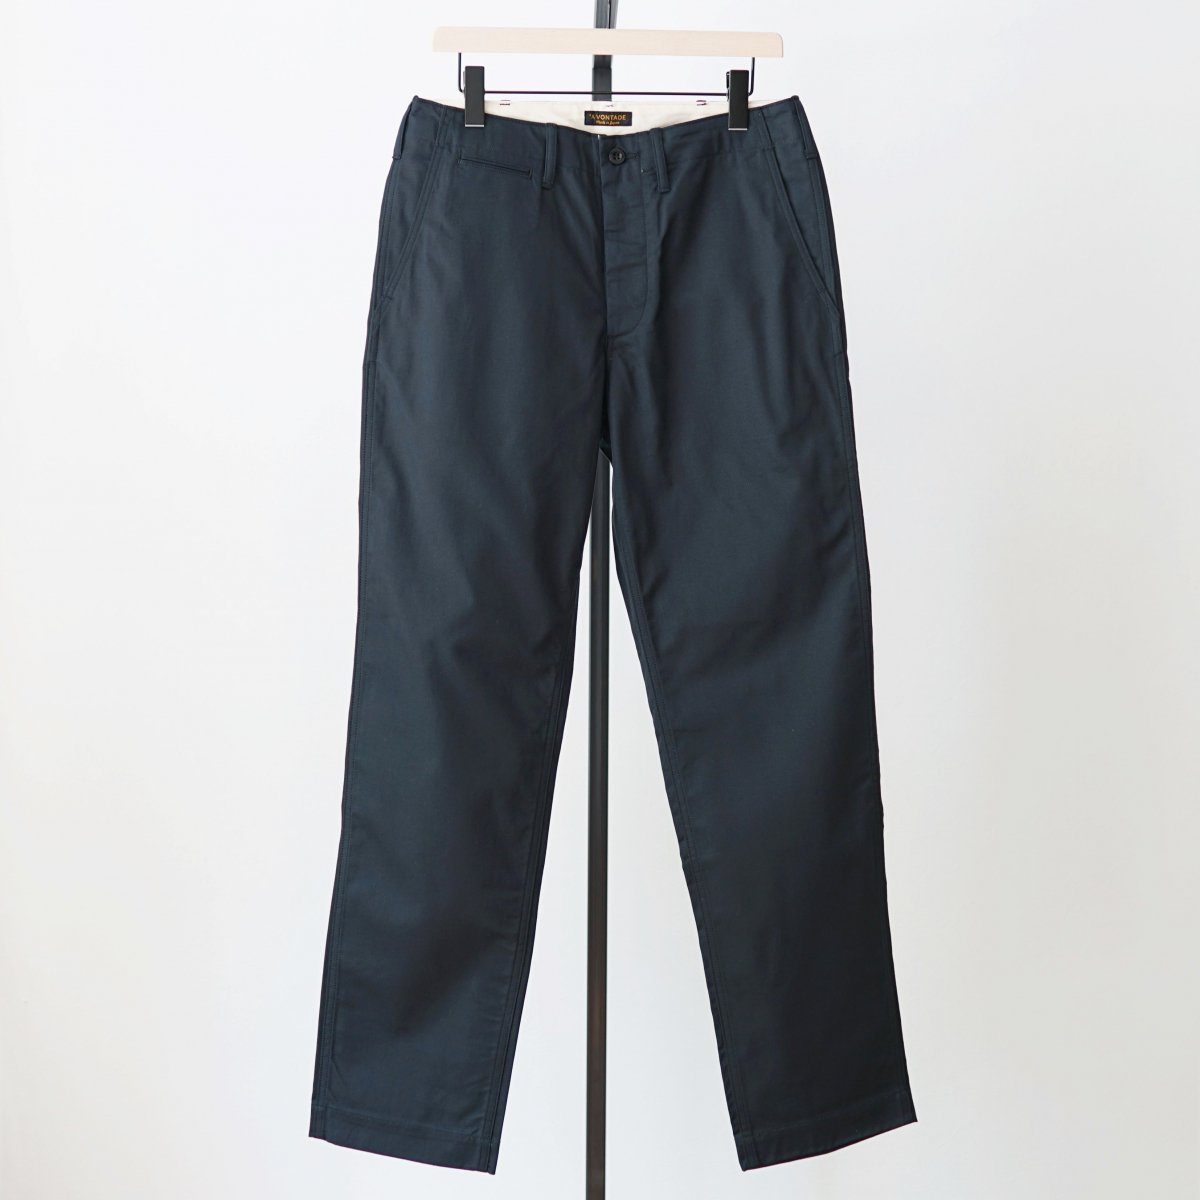 【AVONTADE アボンタージ】CLASSIC CHINO TROUSERS REGULAR FIT - DK NAVY